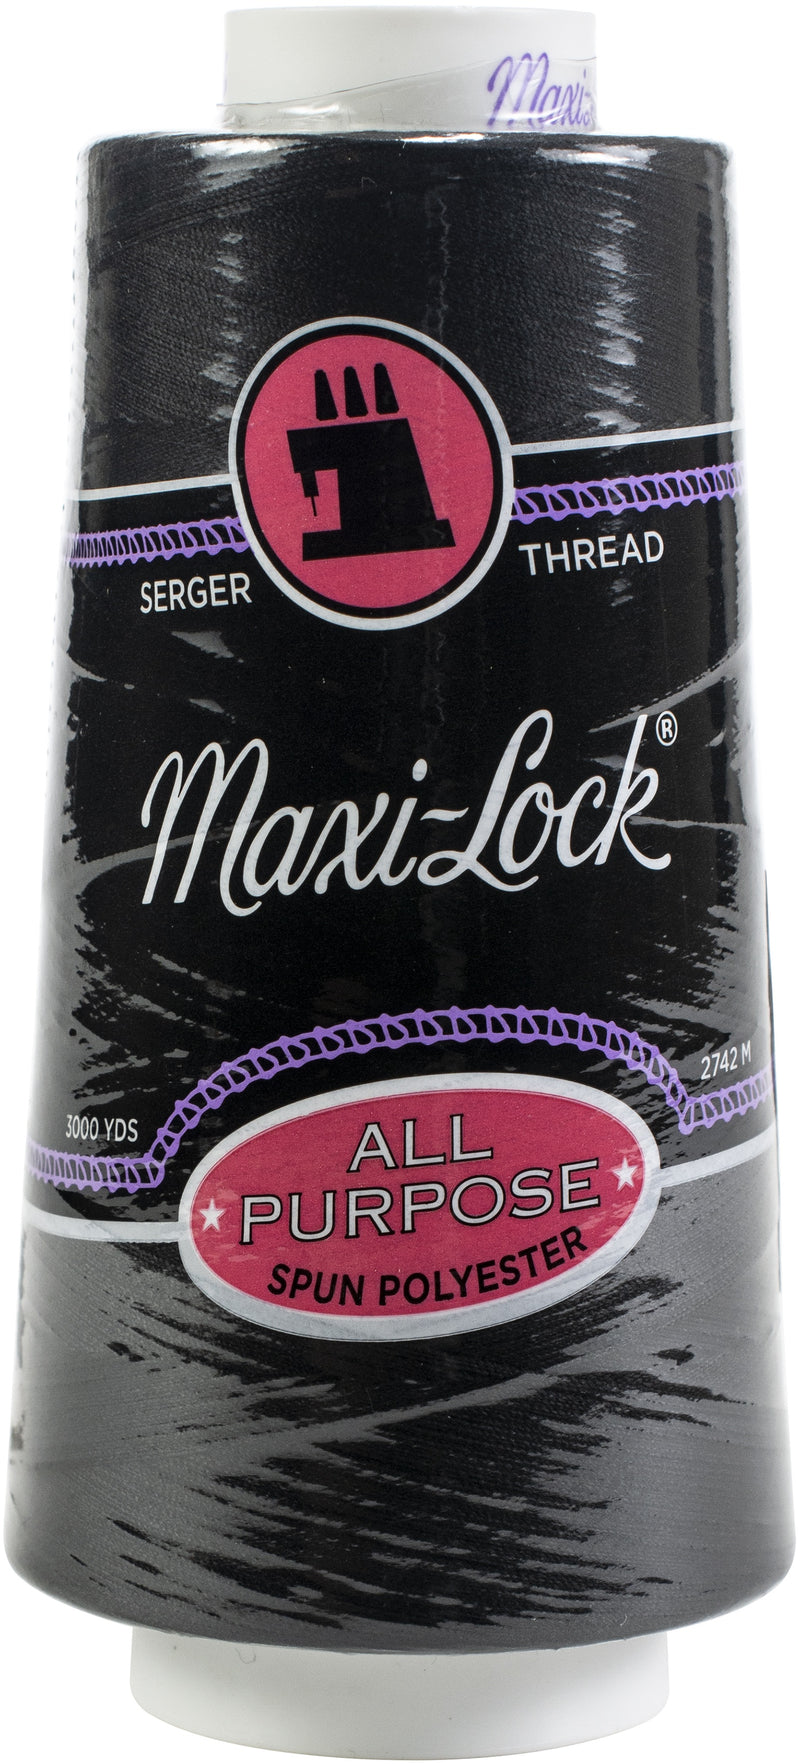 Maxi-Lock Cone Thread 3,000yd-Black